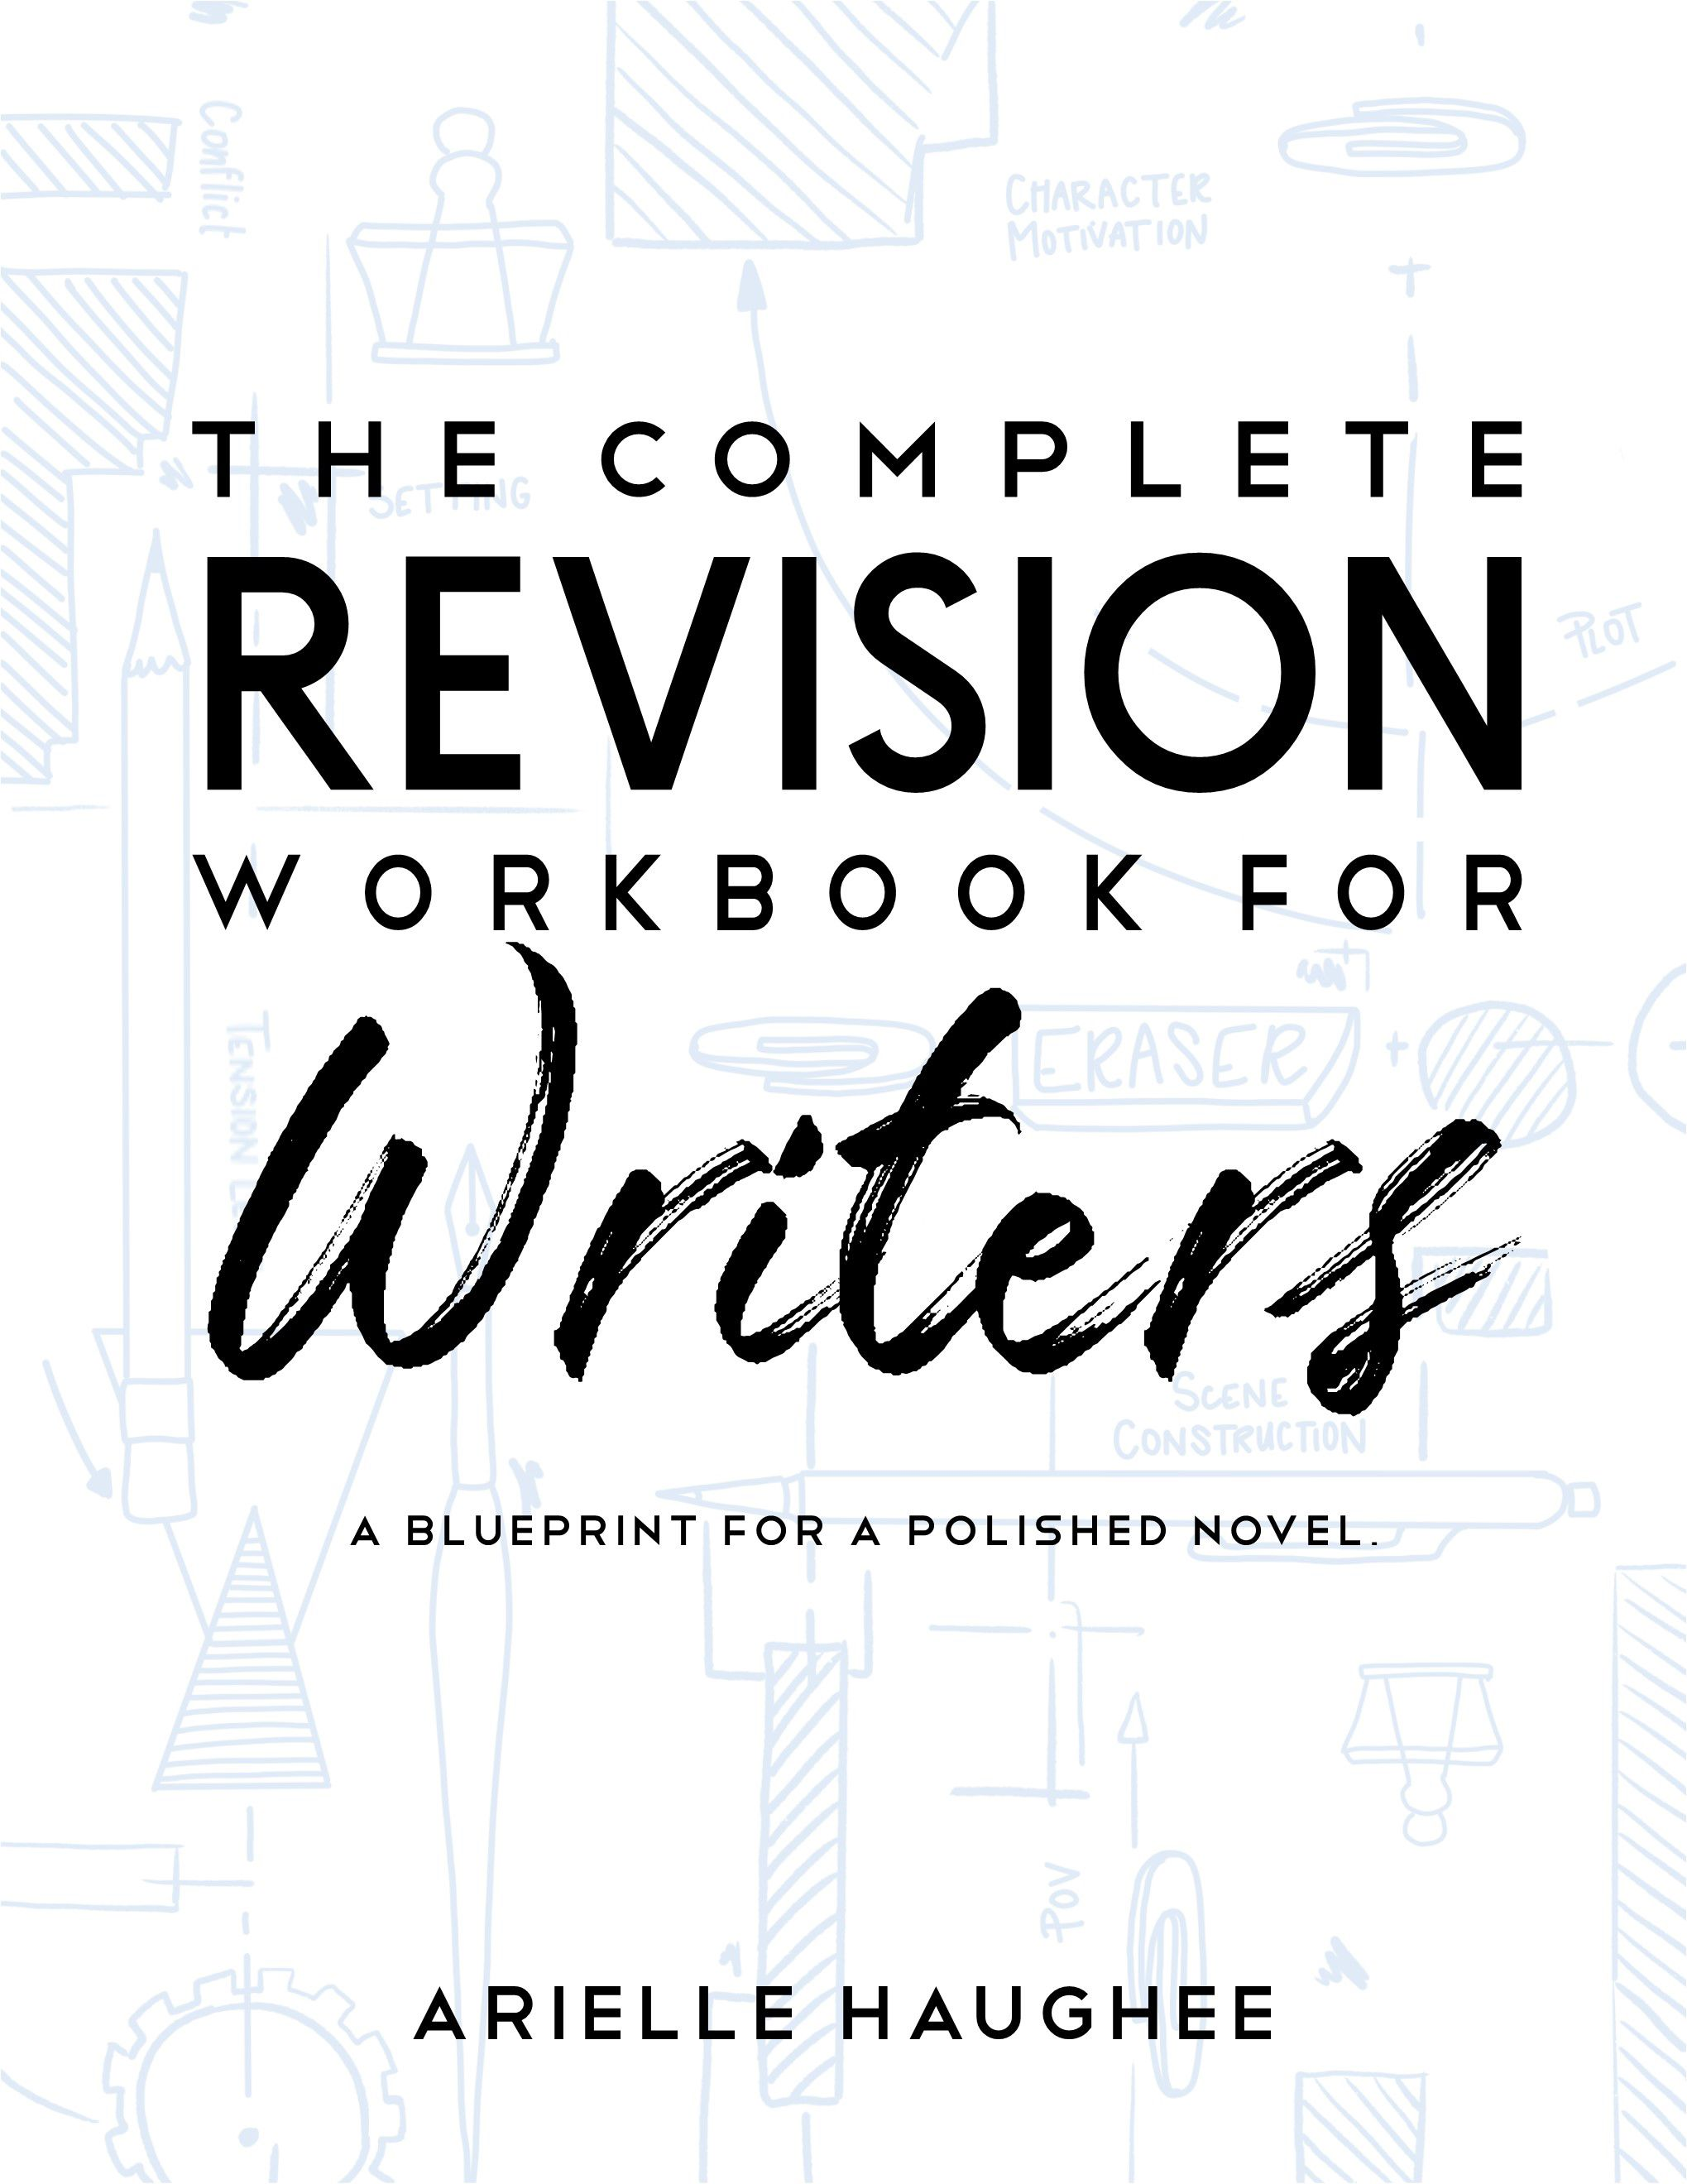 Launch Day: The Complete Revision Workbook for Writers by